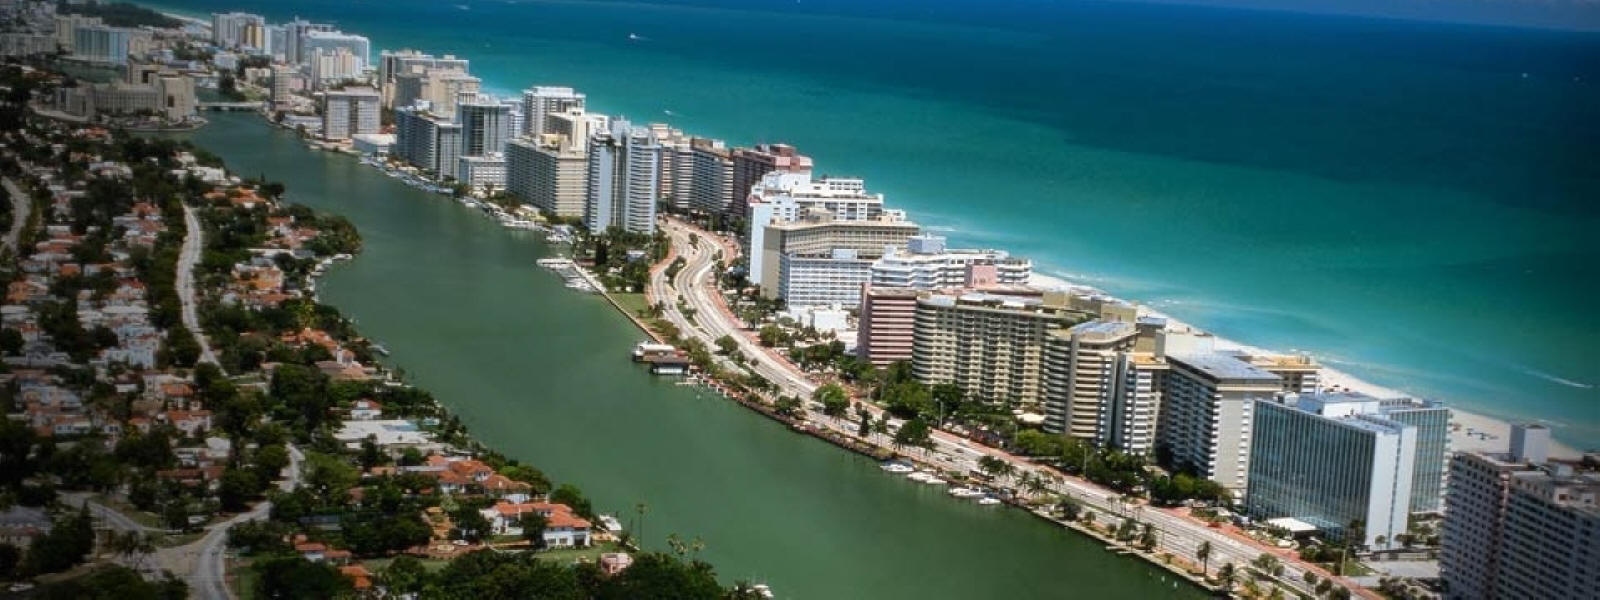 Commercial Real Estate Investments In Florida condos